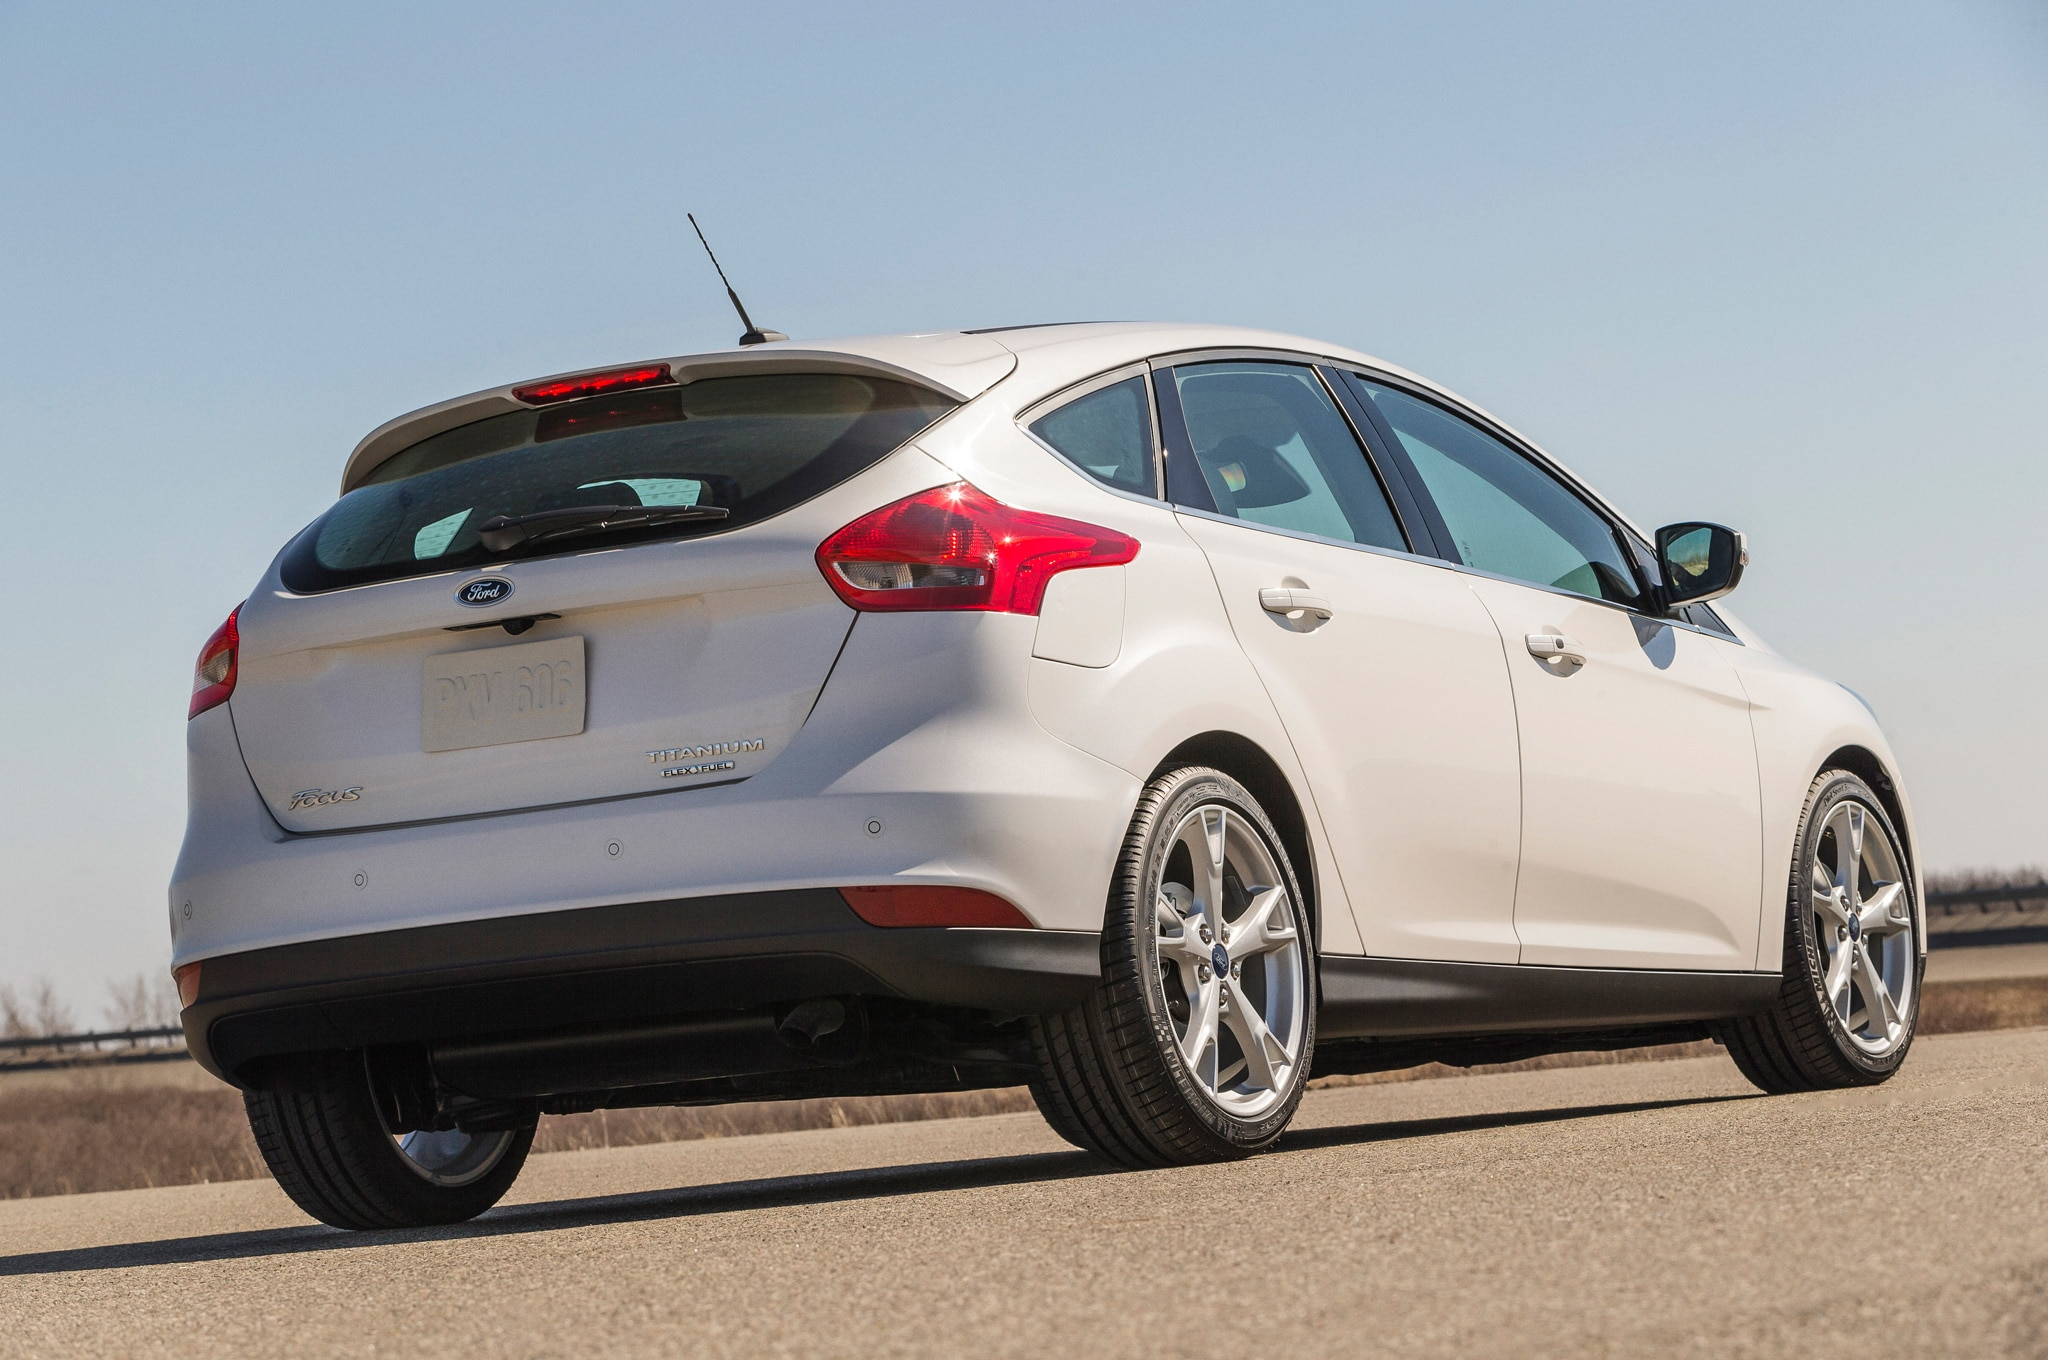 2015 ford focus se 2.0 l manual hatchback